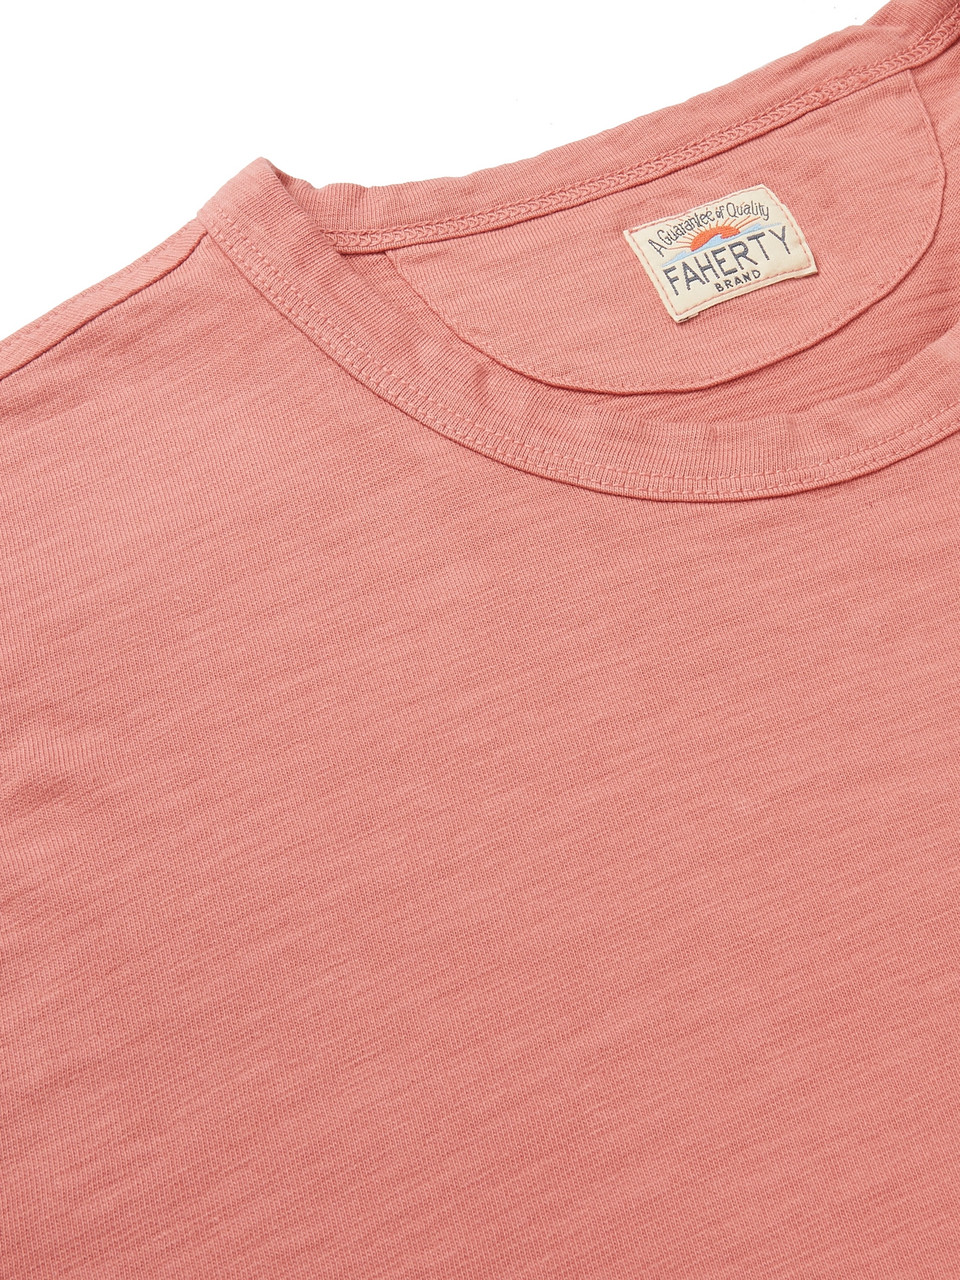 Faherty Garment-Dyed Slub Cotton-Jersey T-Shirt